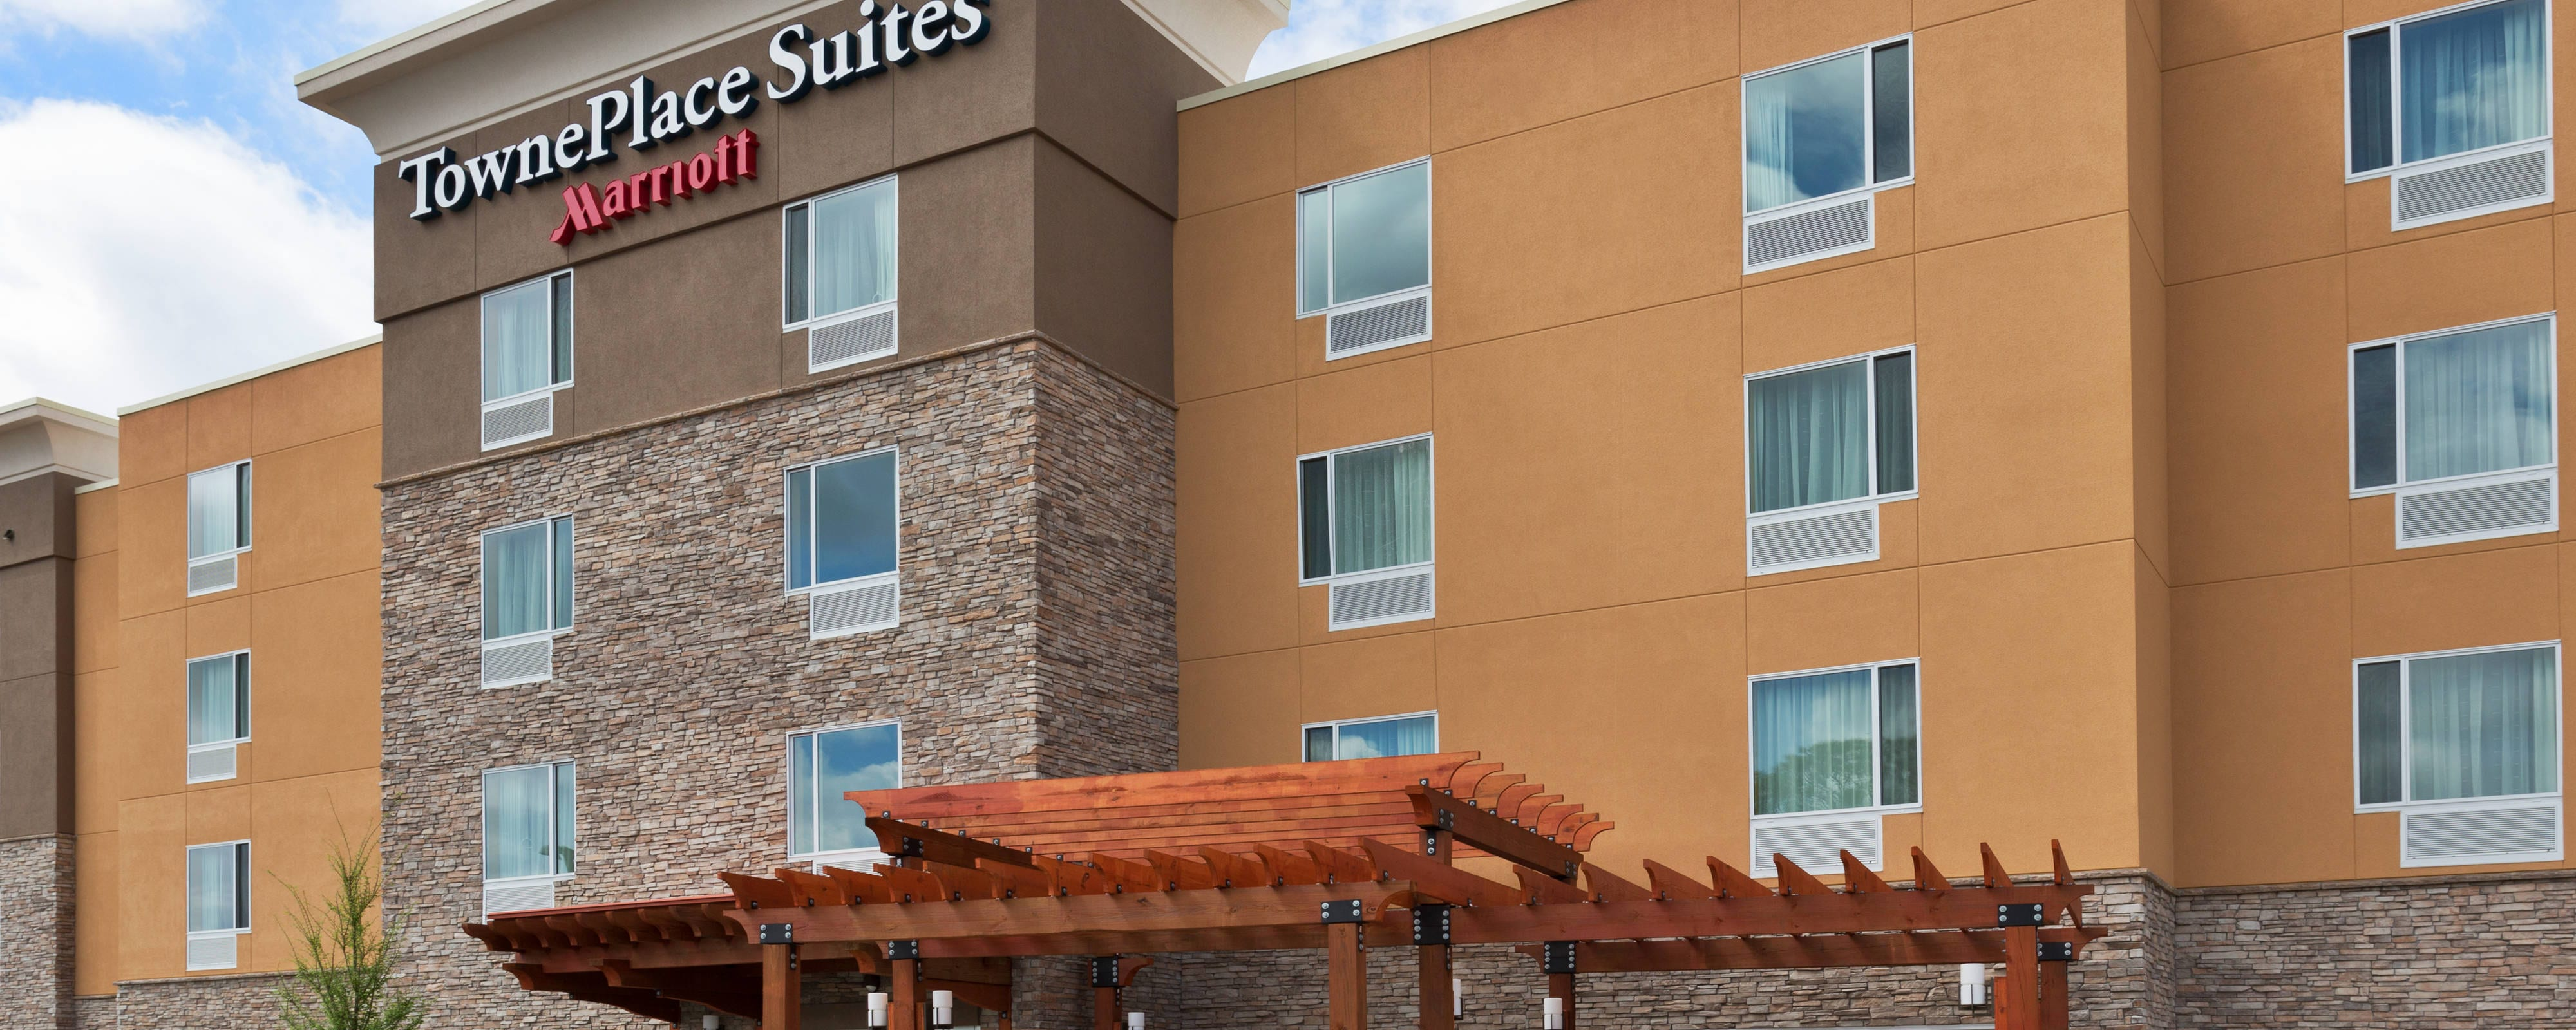 Extended Stay Hotel In Gainesville Towneplace Suites Gainesville Northwest